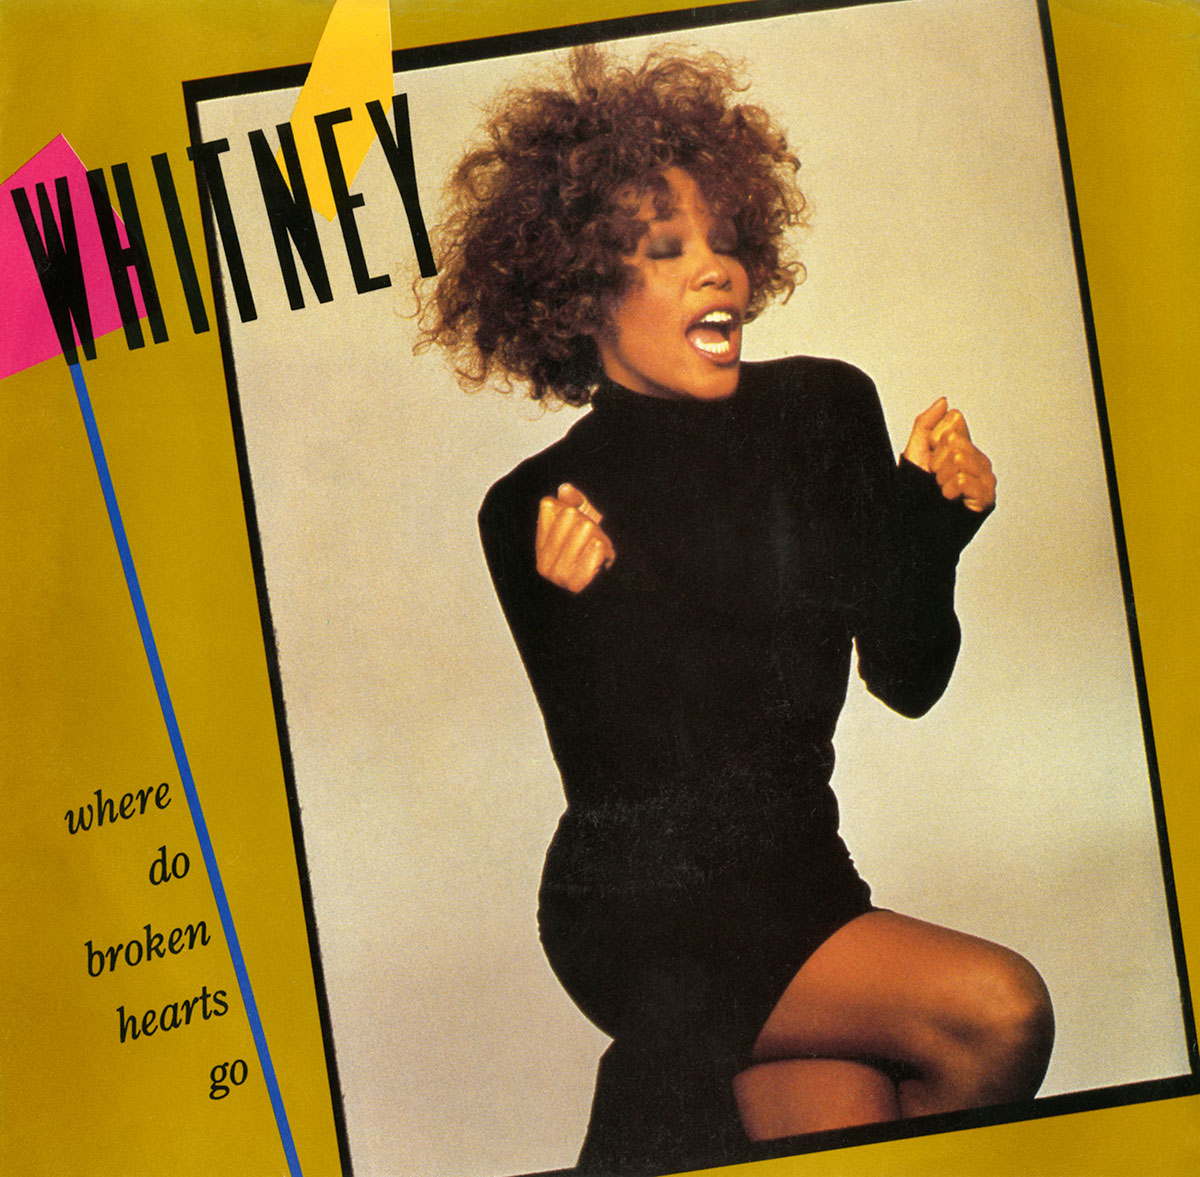 Whitney Houston - Where Do Broken Hearts Go U.S. 7-inch vinyl single front cover